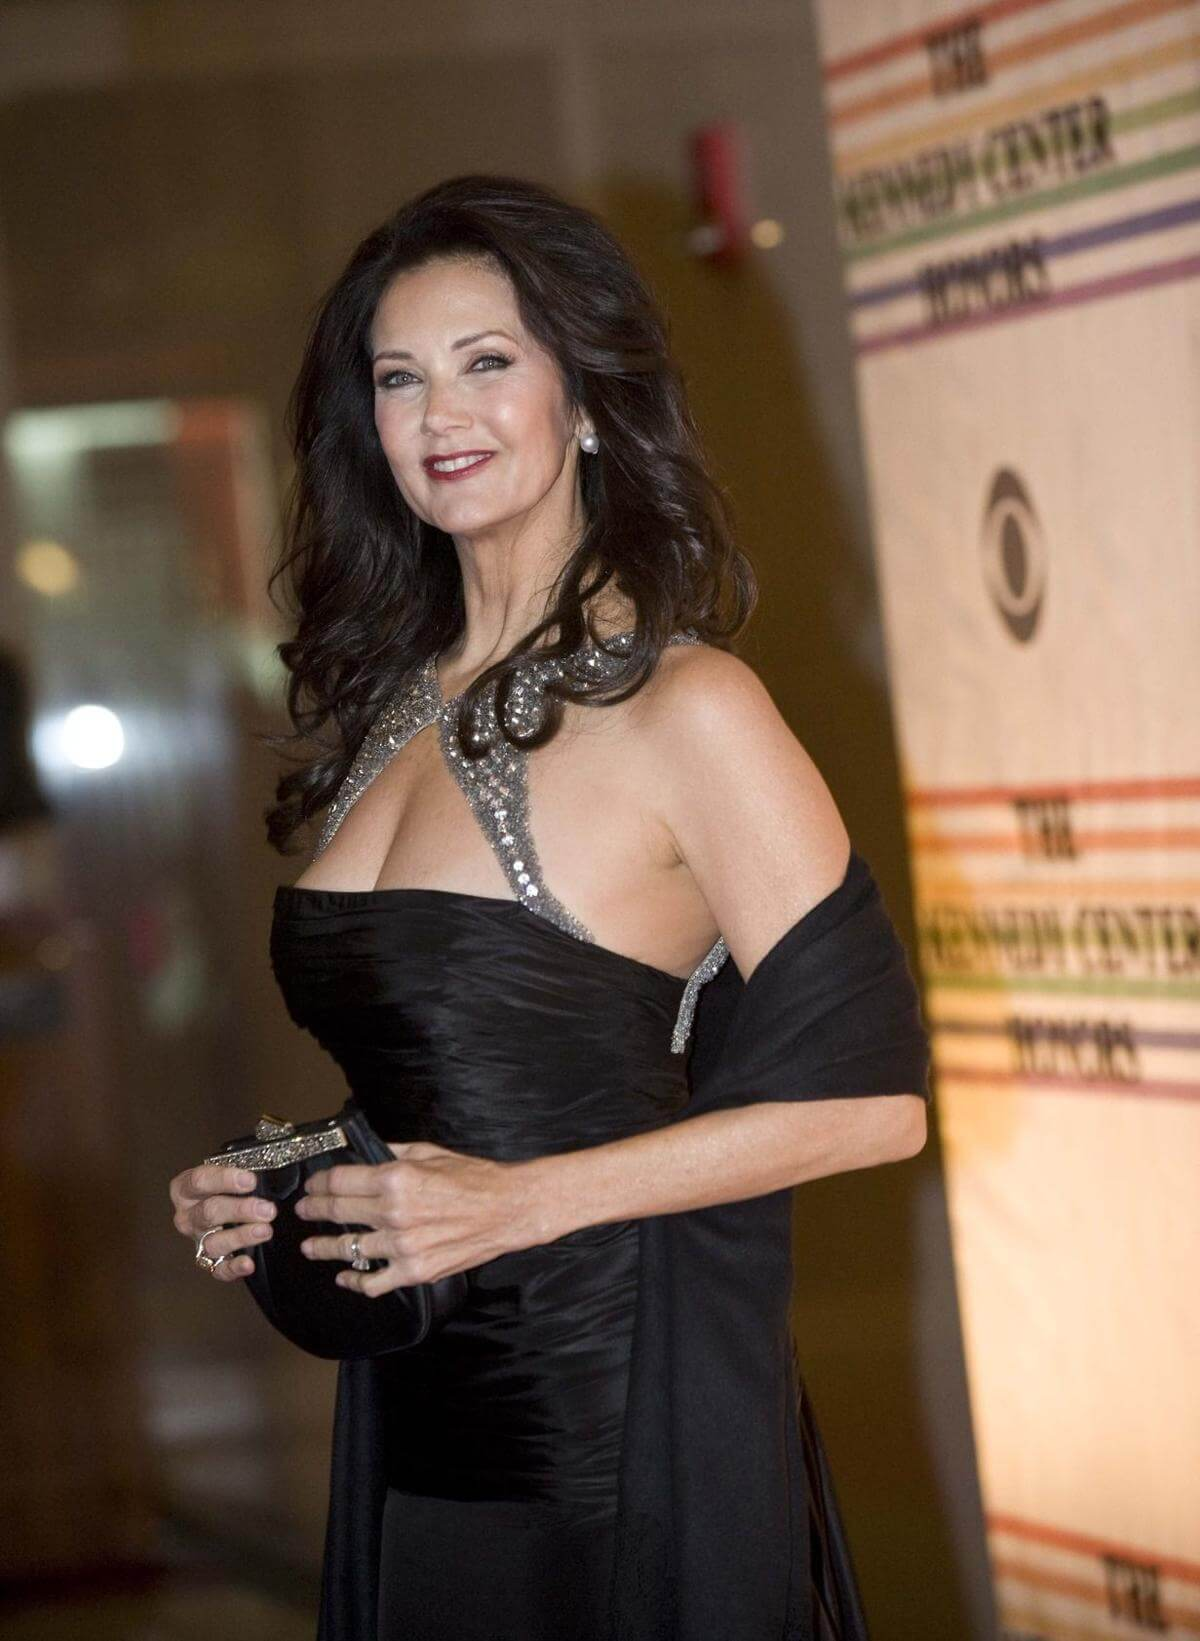 Lynda Carter Nude Images